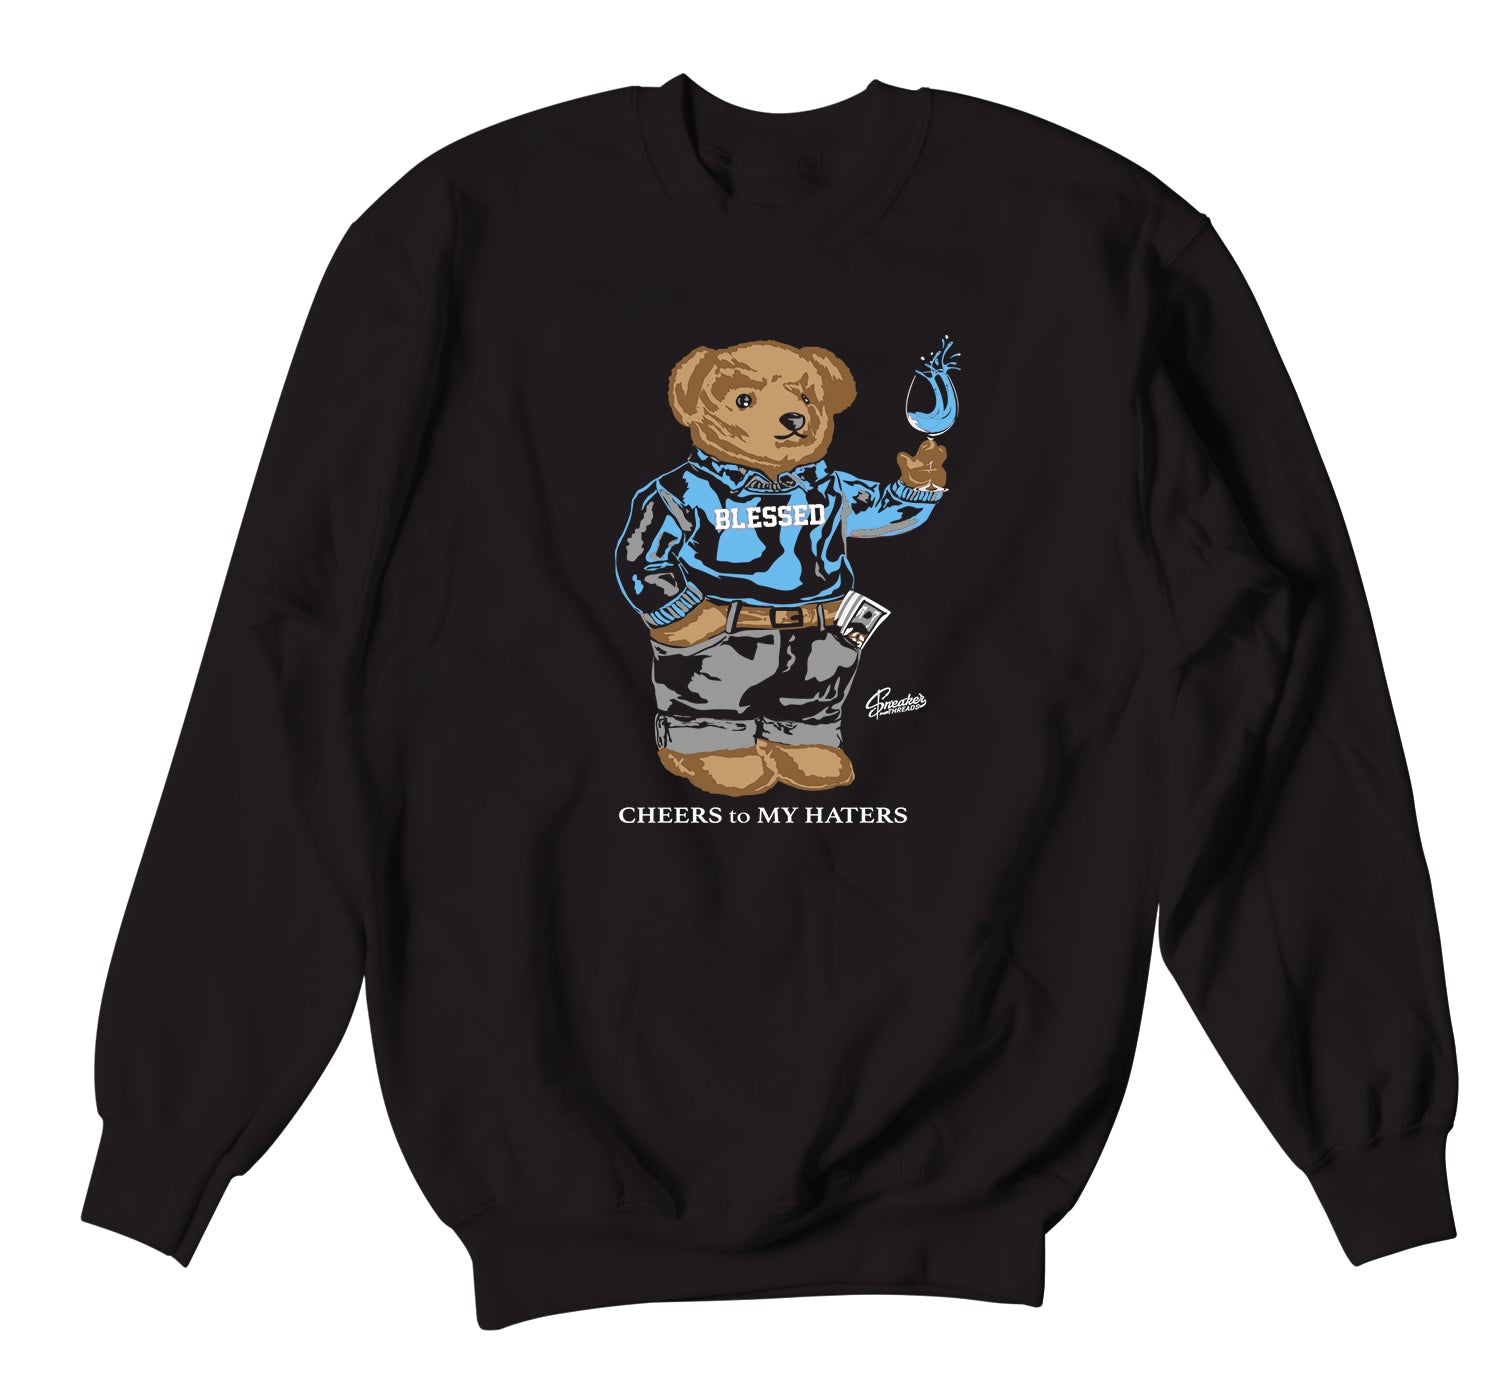 Jordan 3 UNC Sweater - Cheers bear - Black